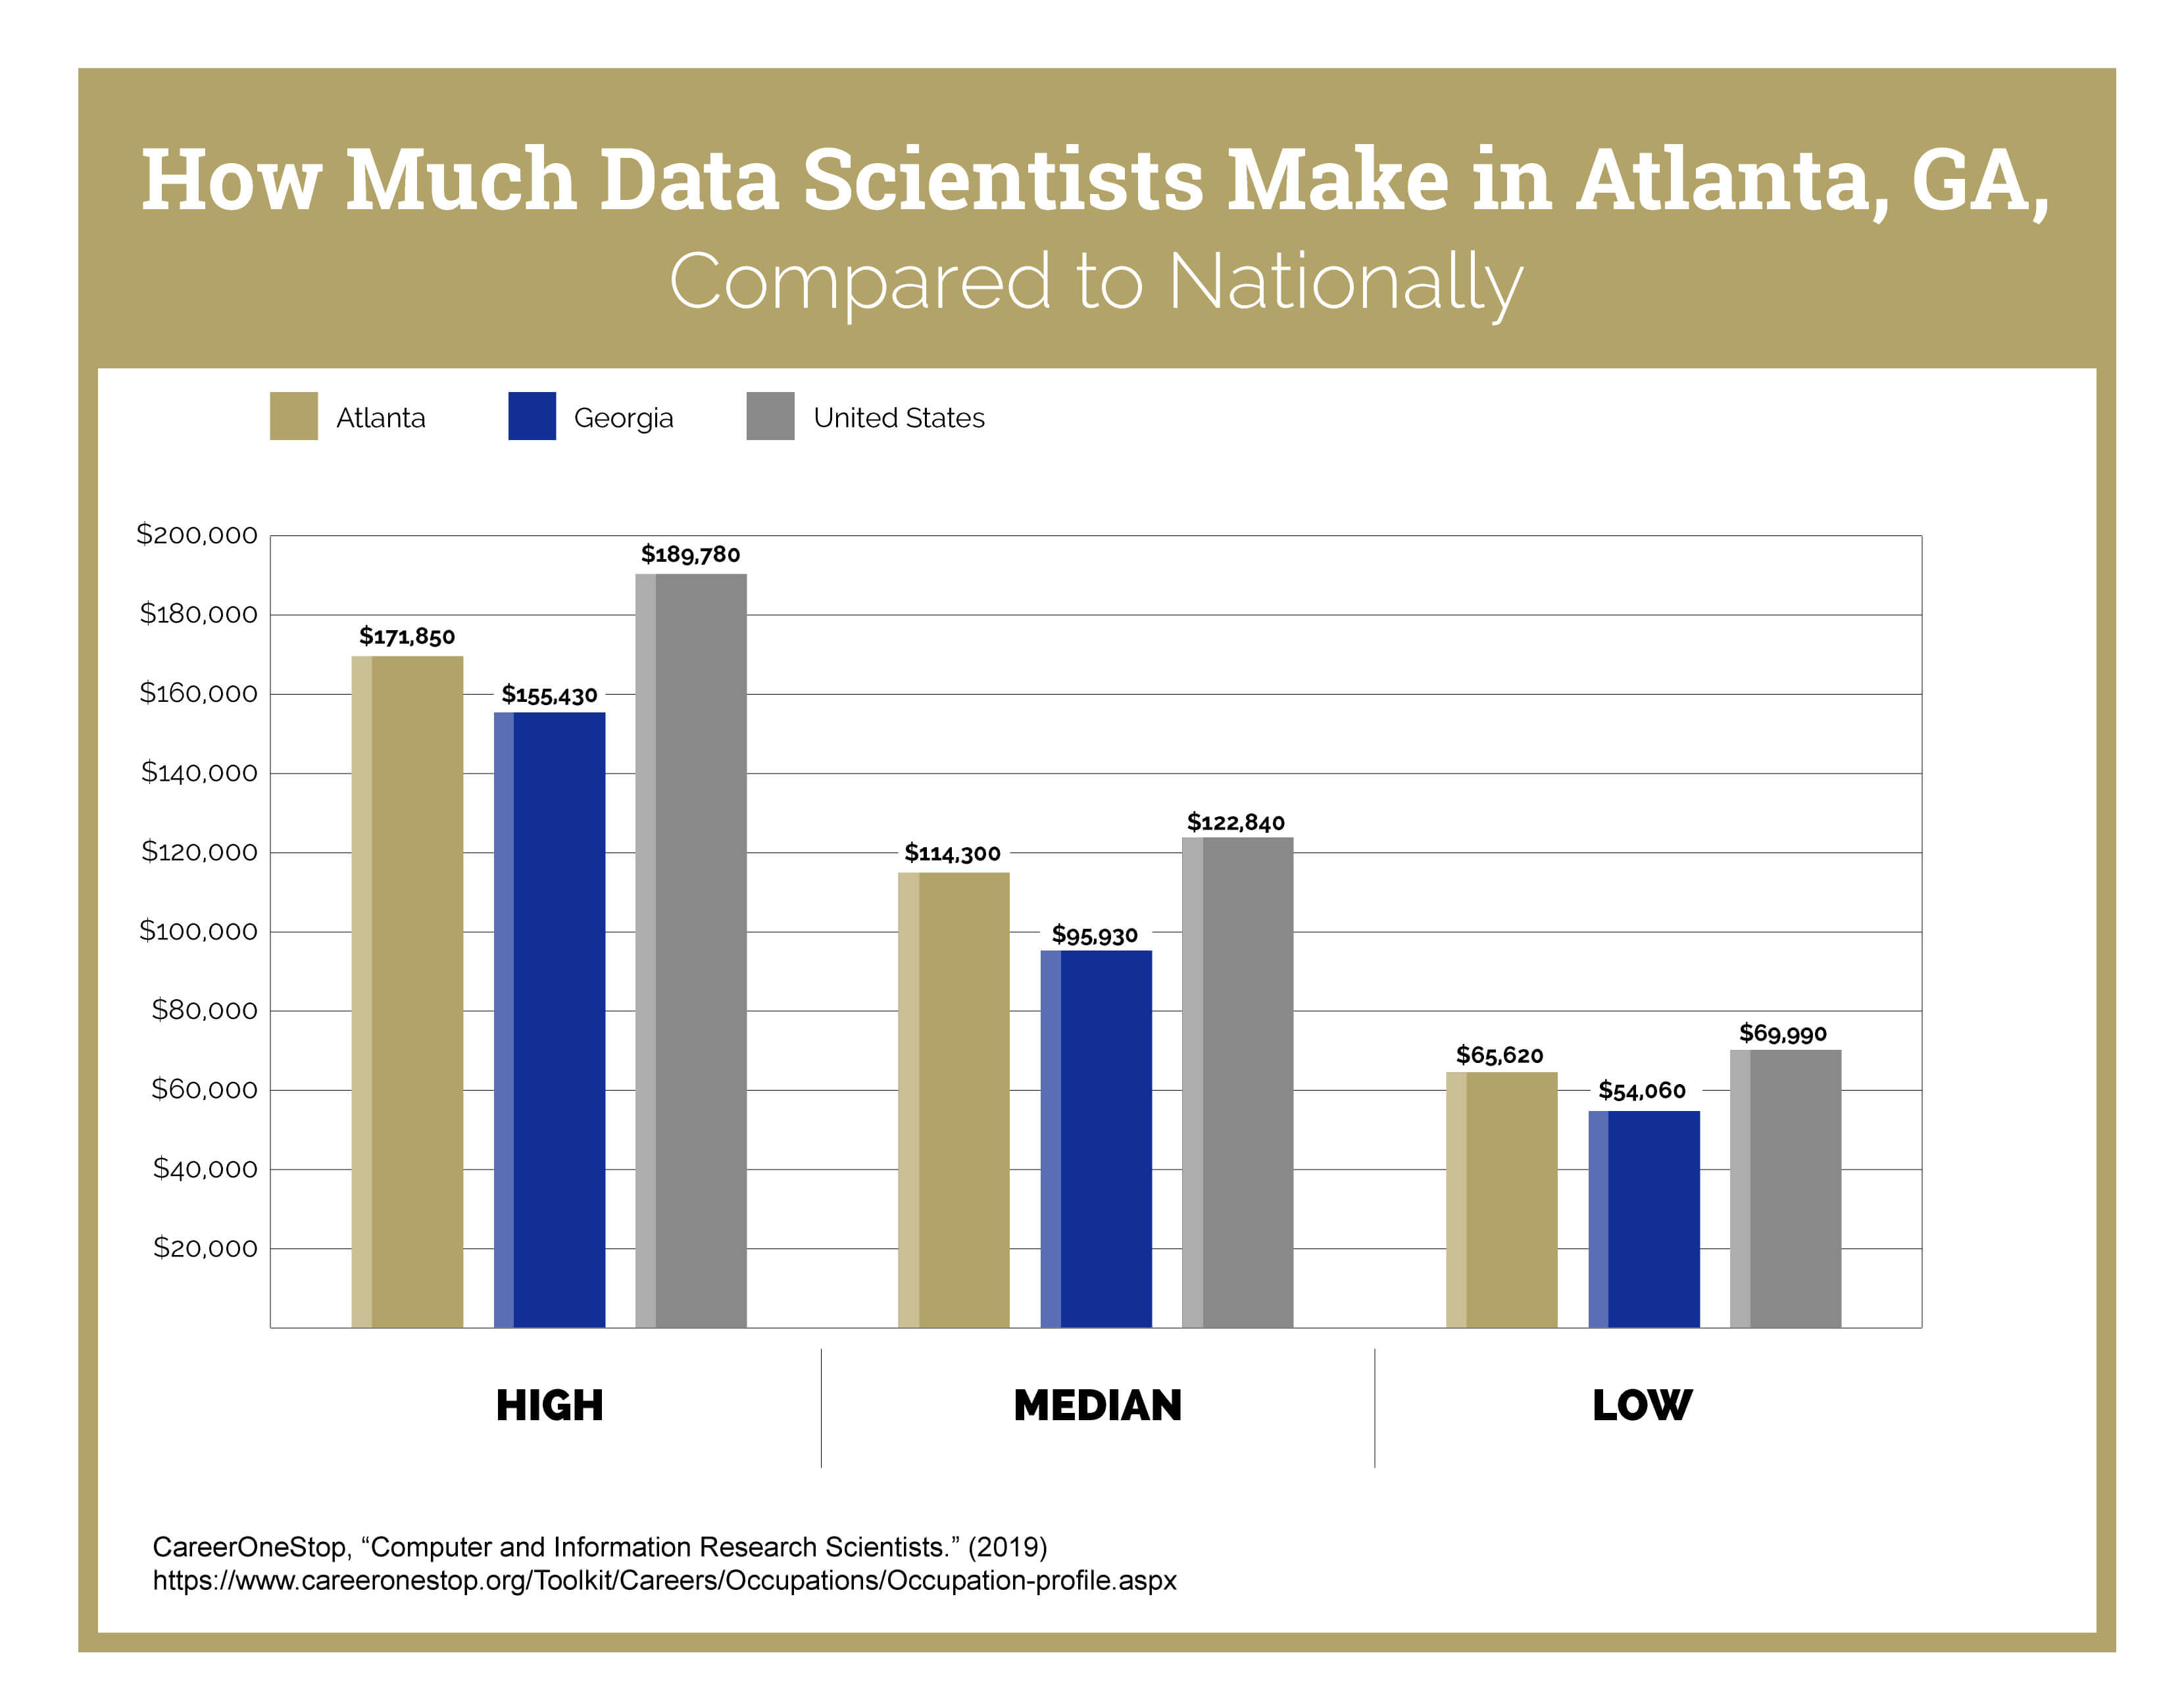 A graph that shows how much data scientists make in Atlanta, GA, compared to the national average.